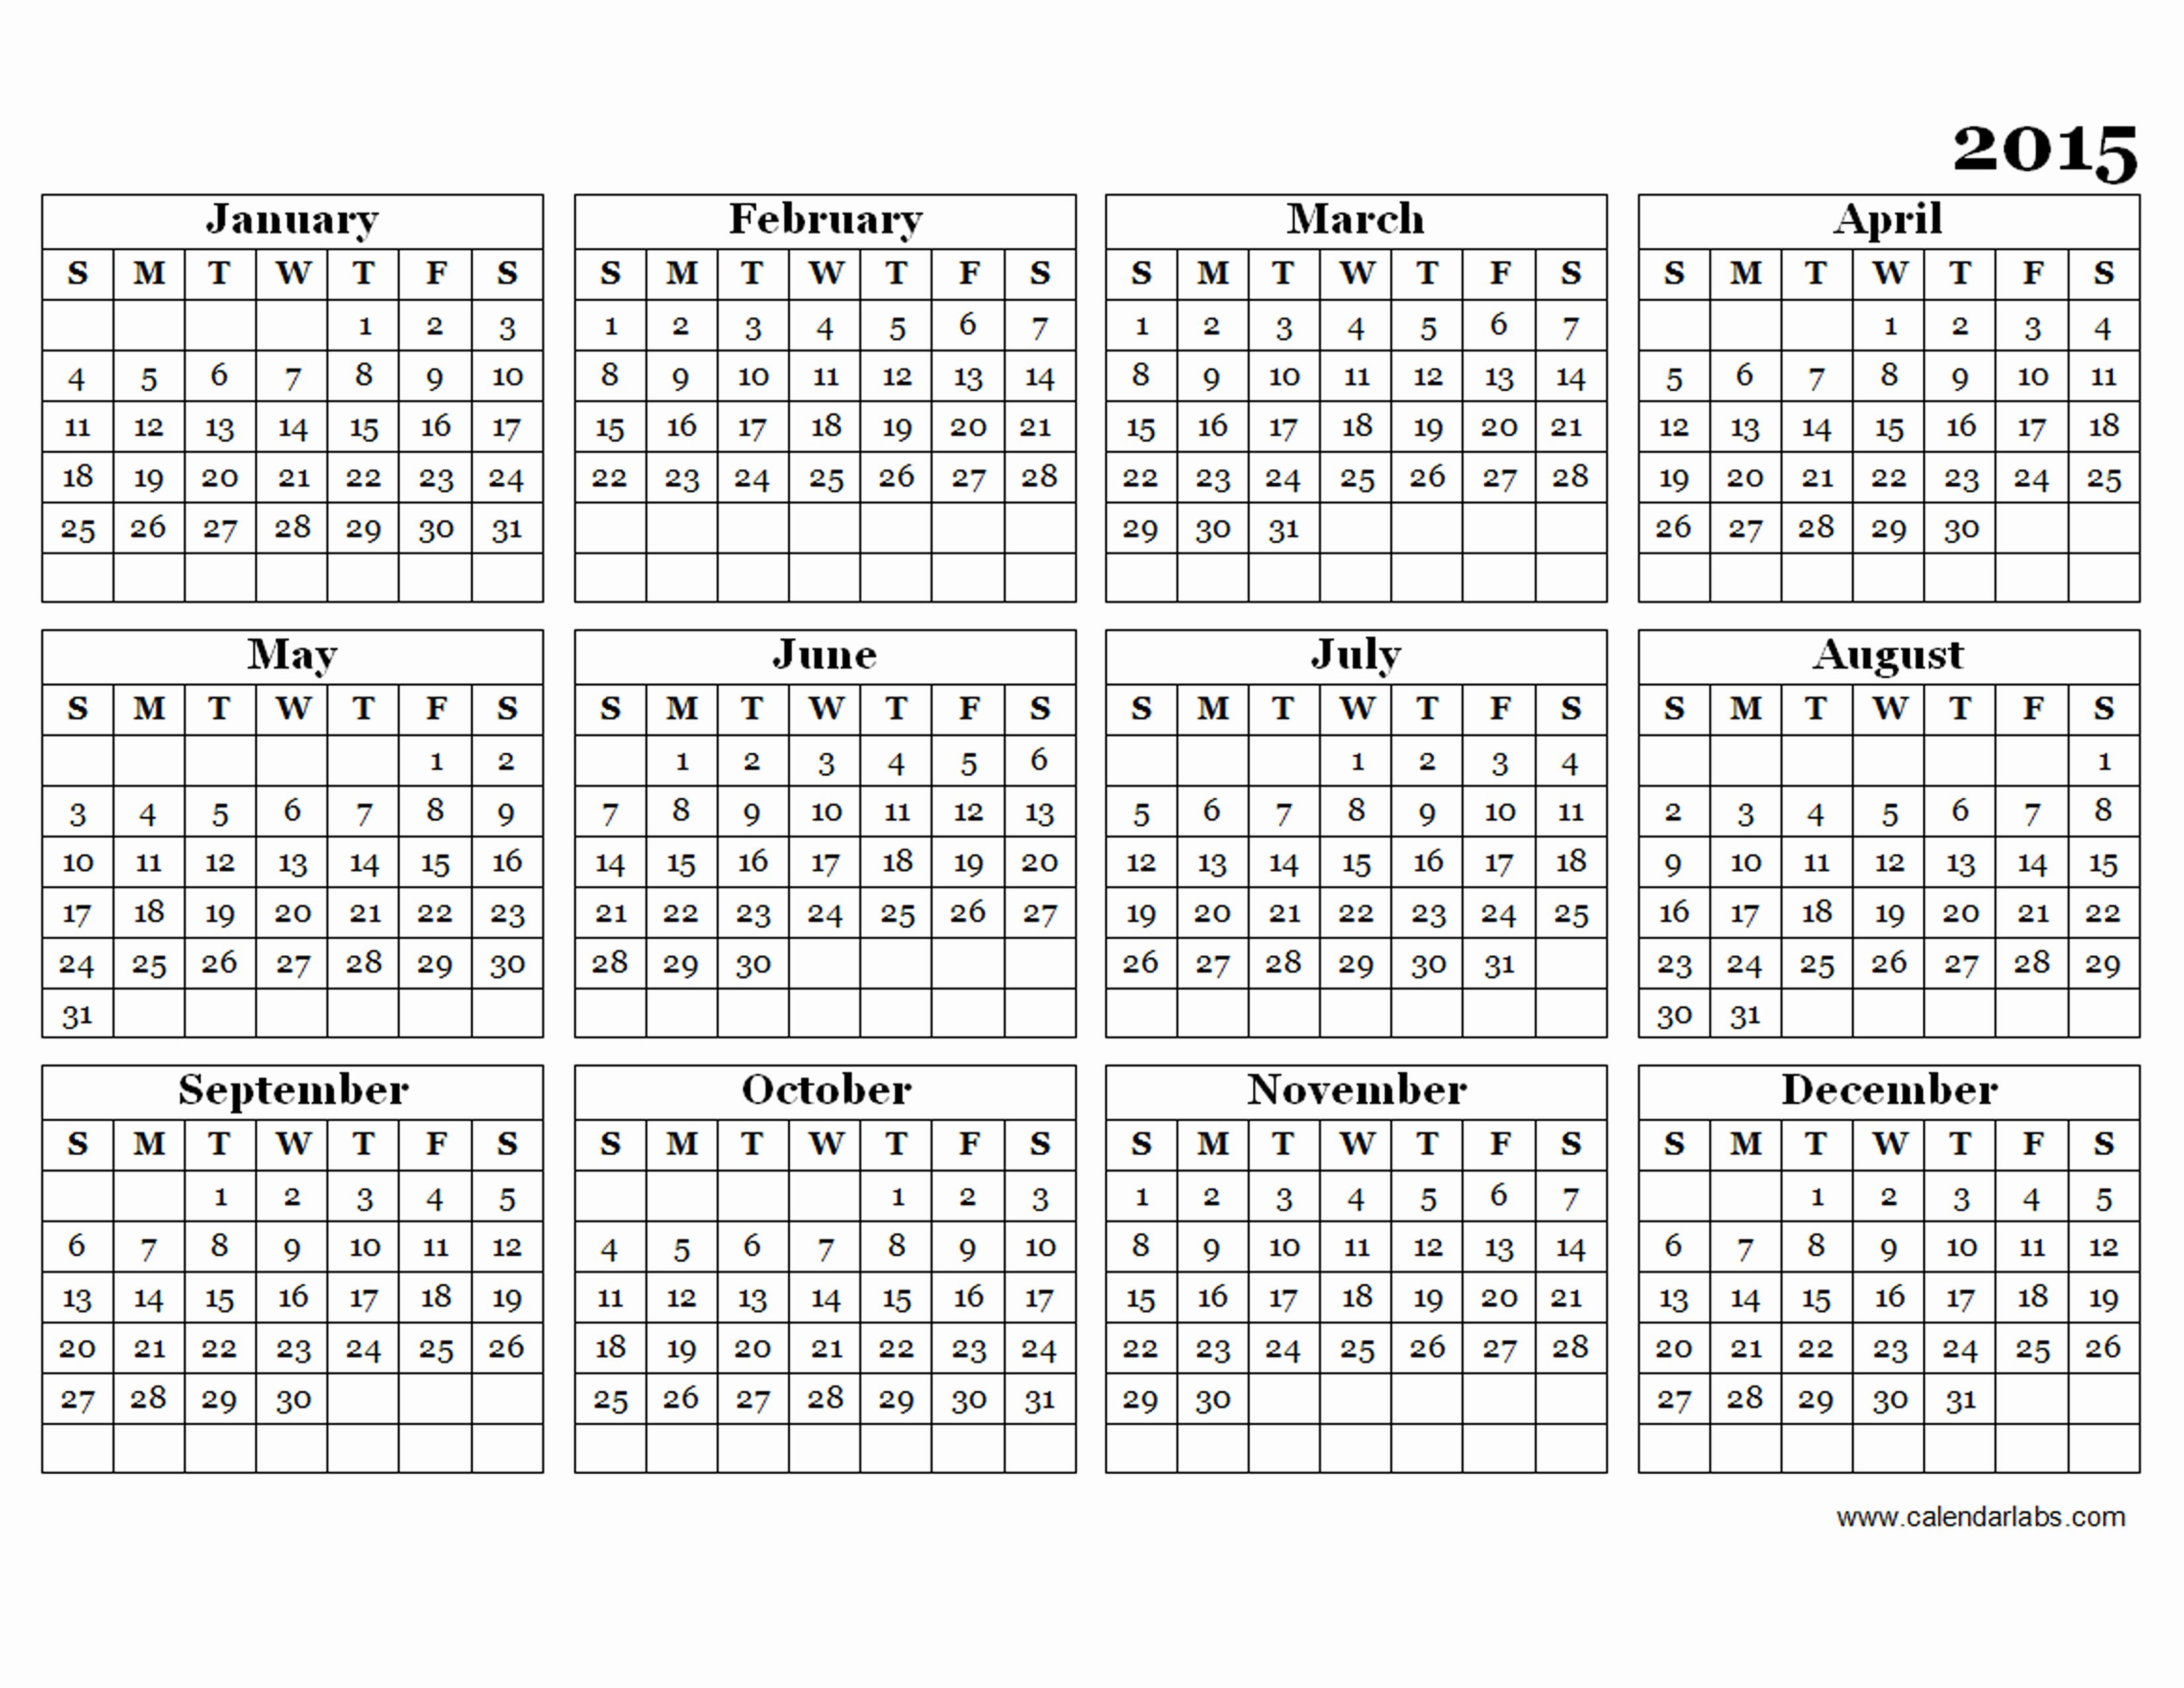 Free Yearly Calendar Templates 2015 Unique 2015 Yearly Calendar Template 09 Free Printable Templates